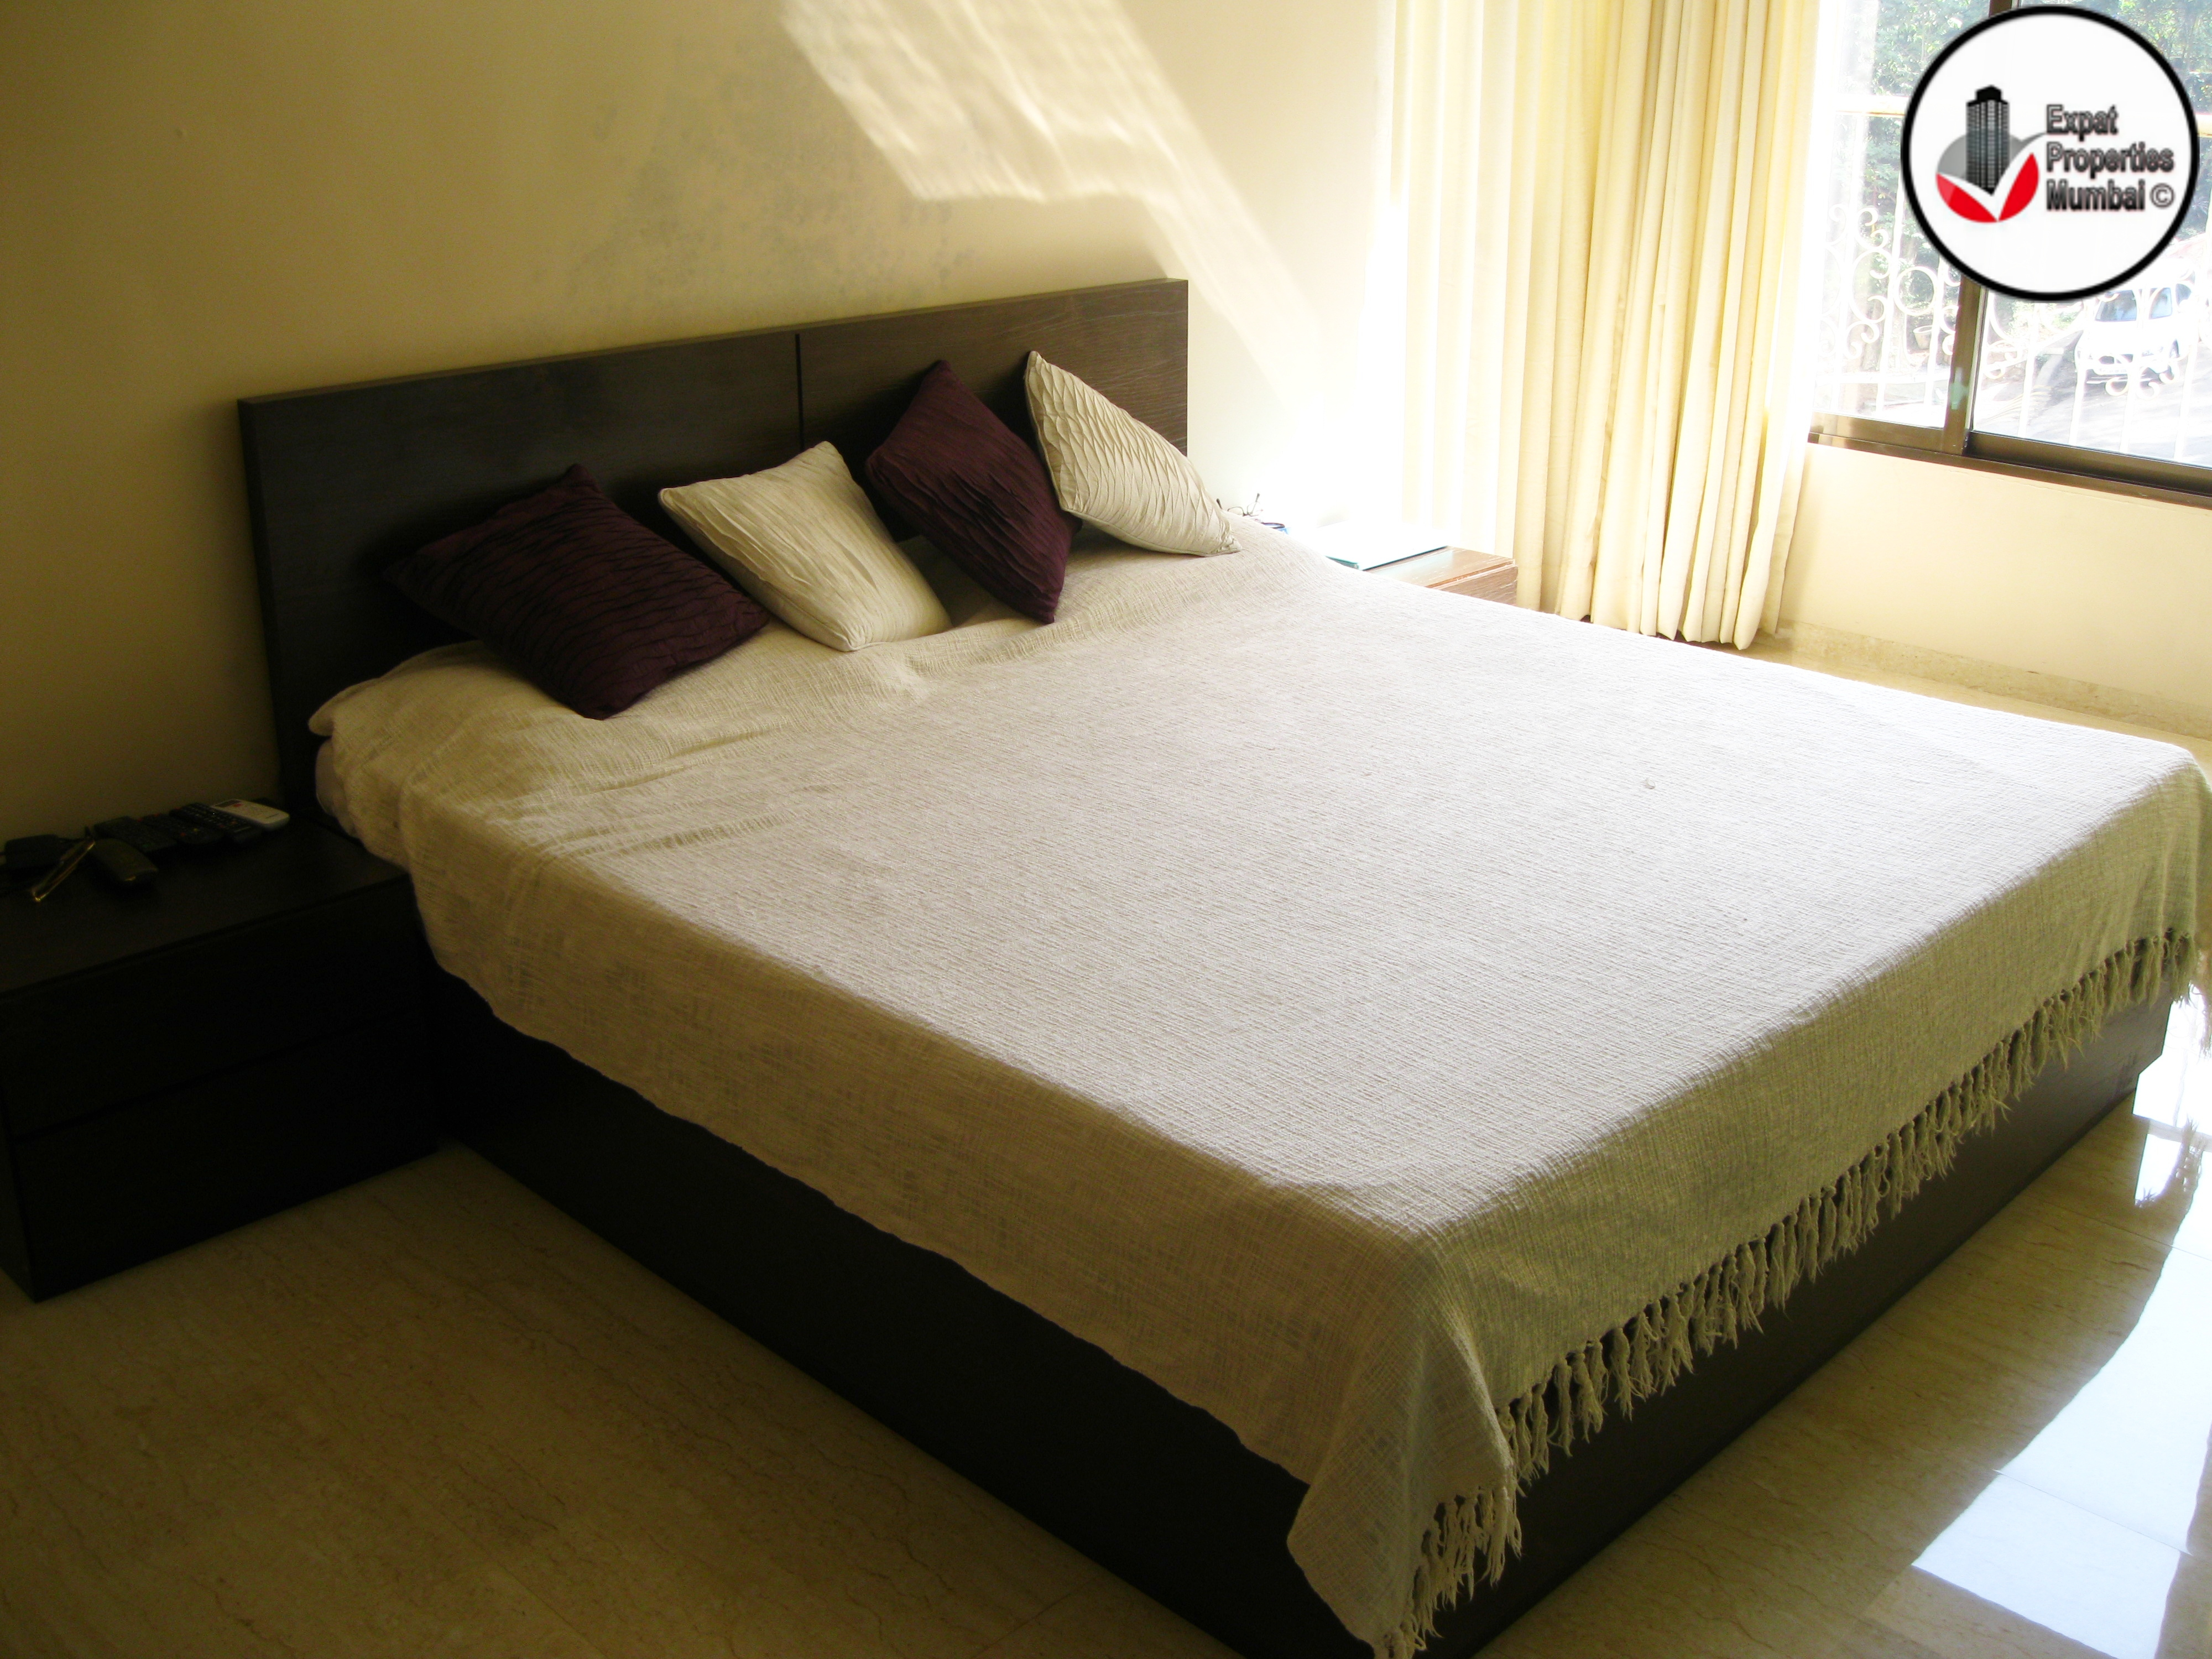 2bhk Apartment for Rent in Pali Hill Bandra,